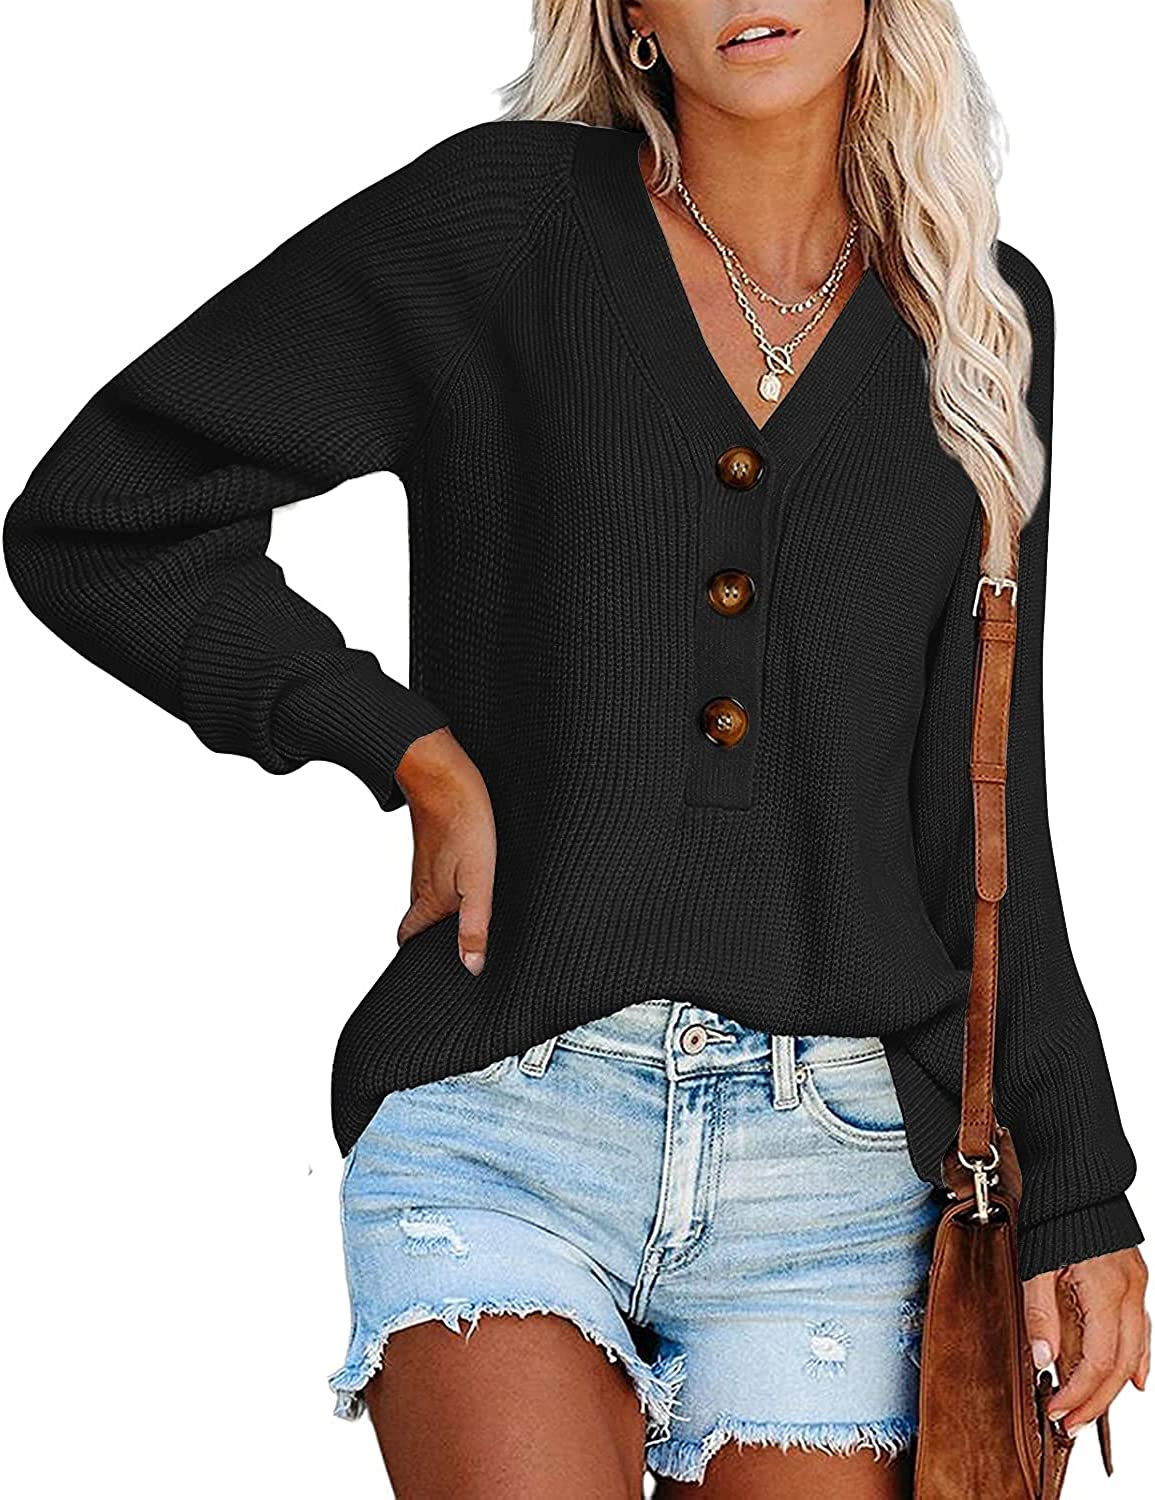 BTFBM Long Sleeve V Neck Button Down Sweater Solid Color Ribbed Knit Sweater Casual Relaxed Fit Pullover Cute Jumper